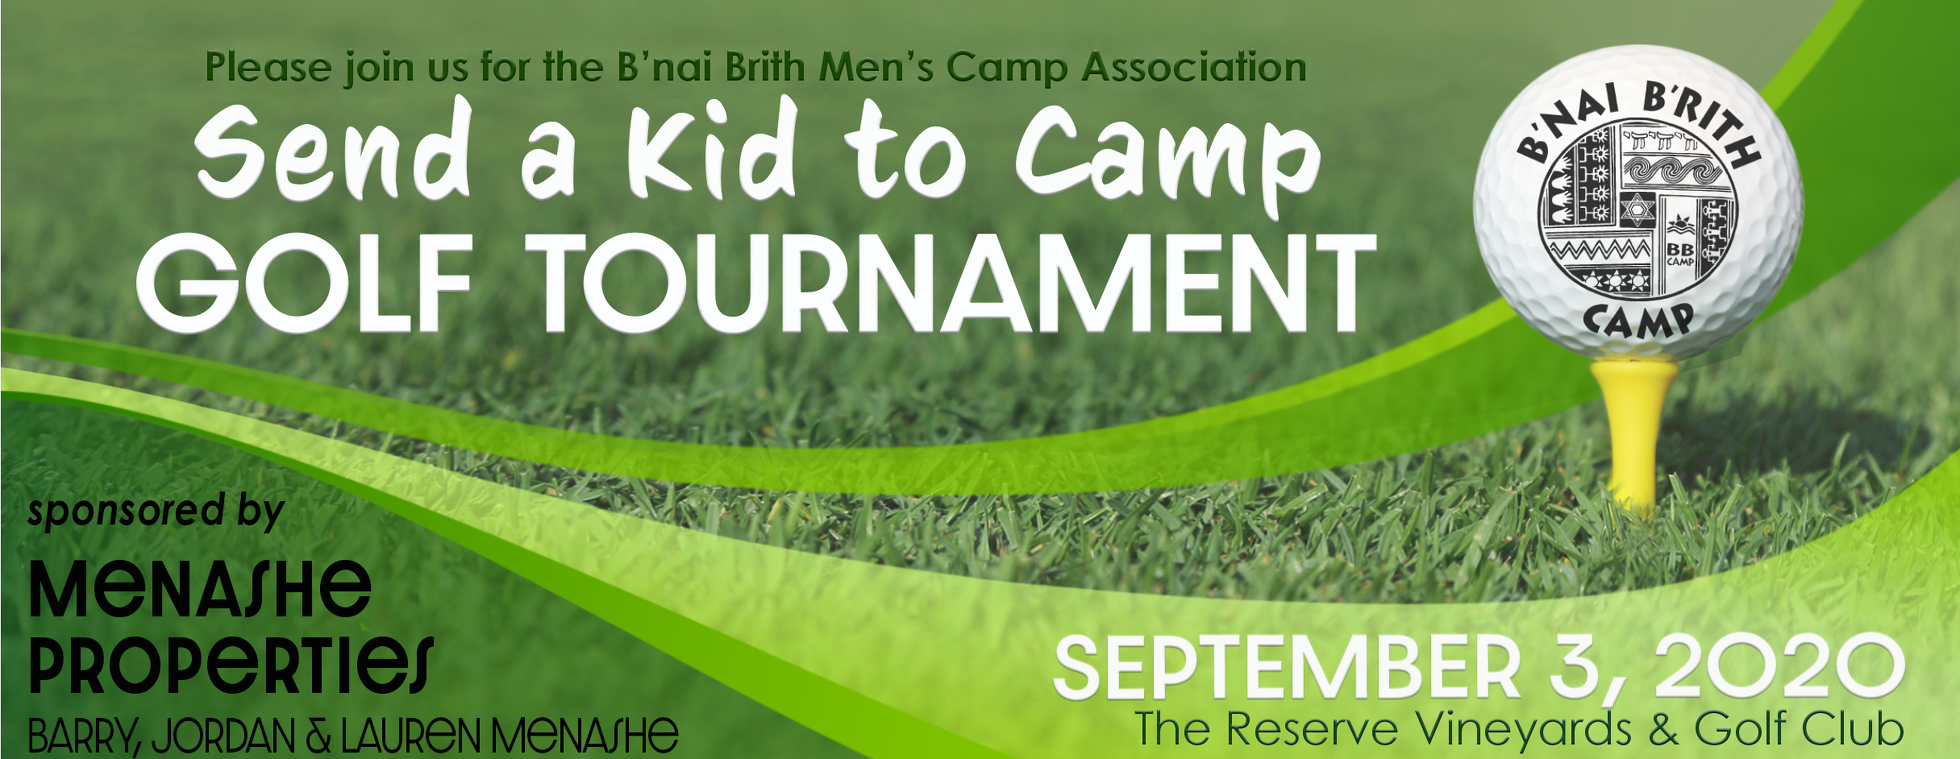 Send a Kid to Camp Golf Tournament